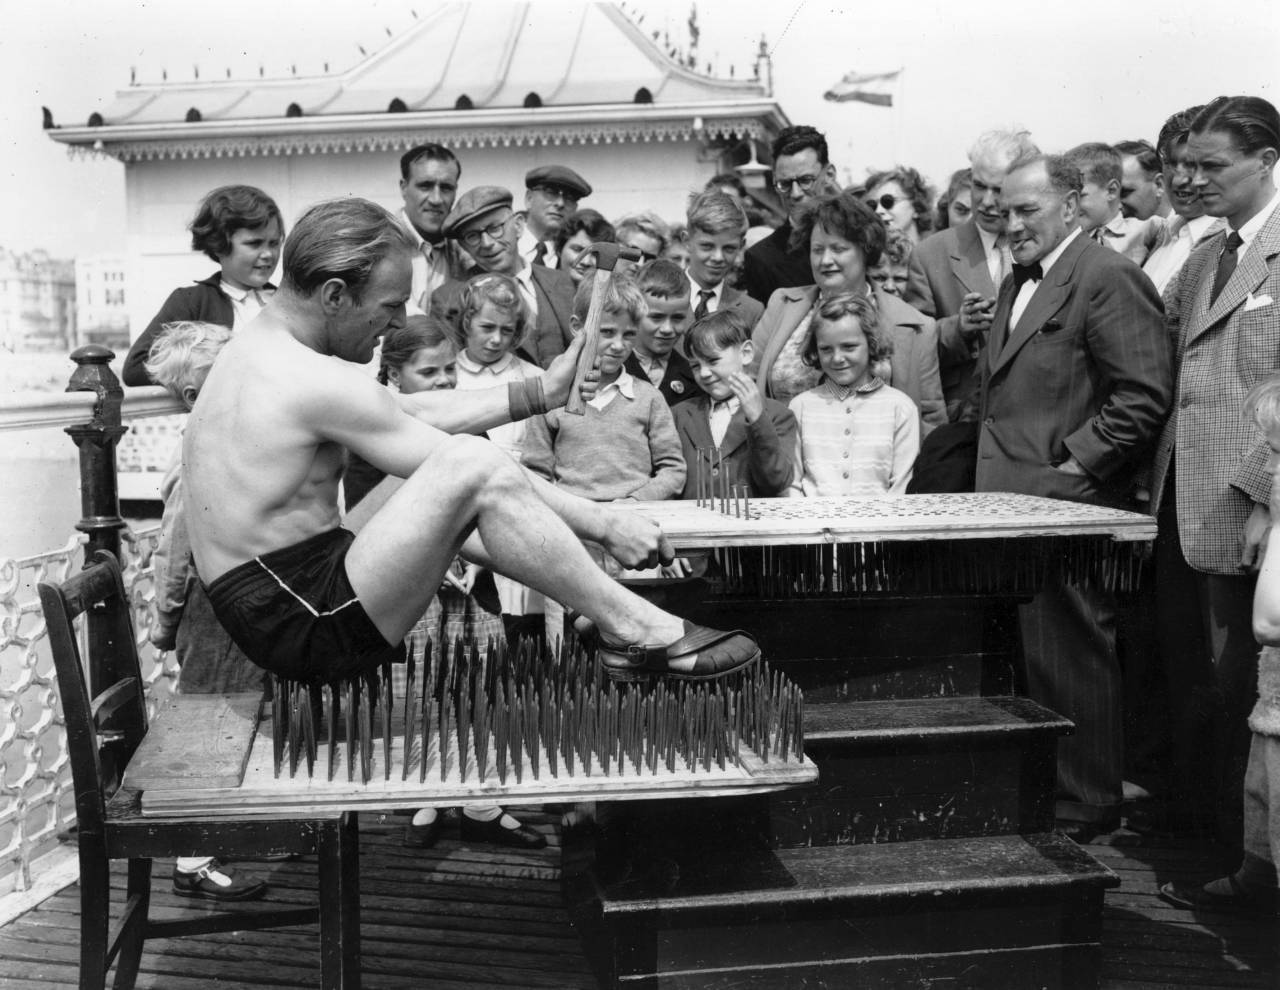 Stunt man Michael Blondini puts the finishing touches to his bed of nails on the Palace Pier, Brighton. (Photo by Keystone/Getty Images)